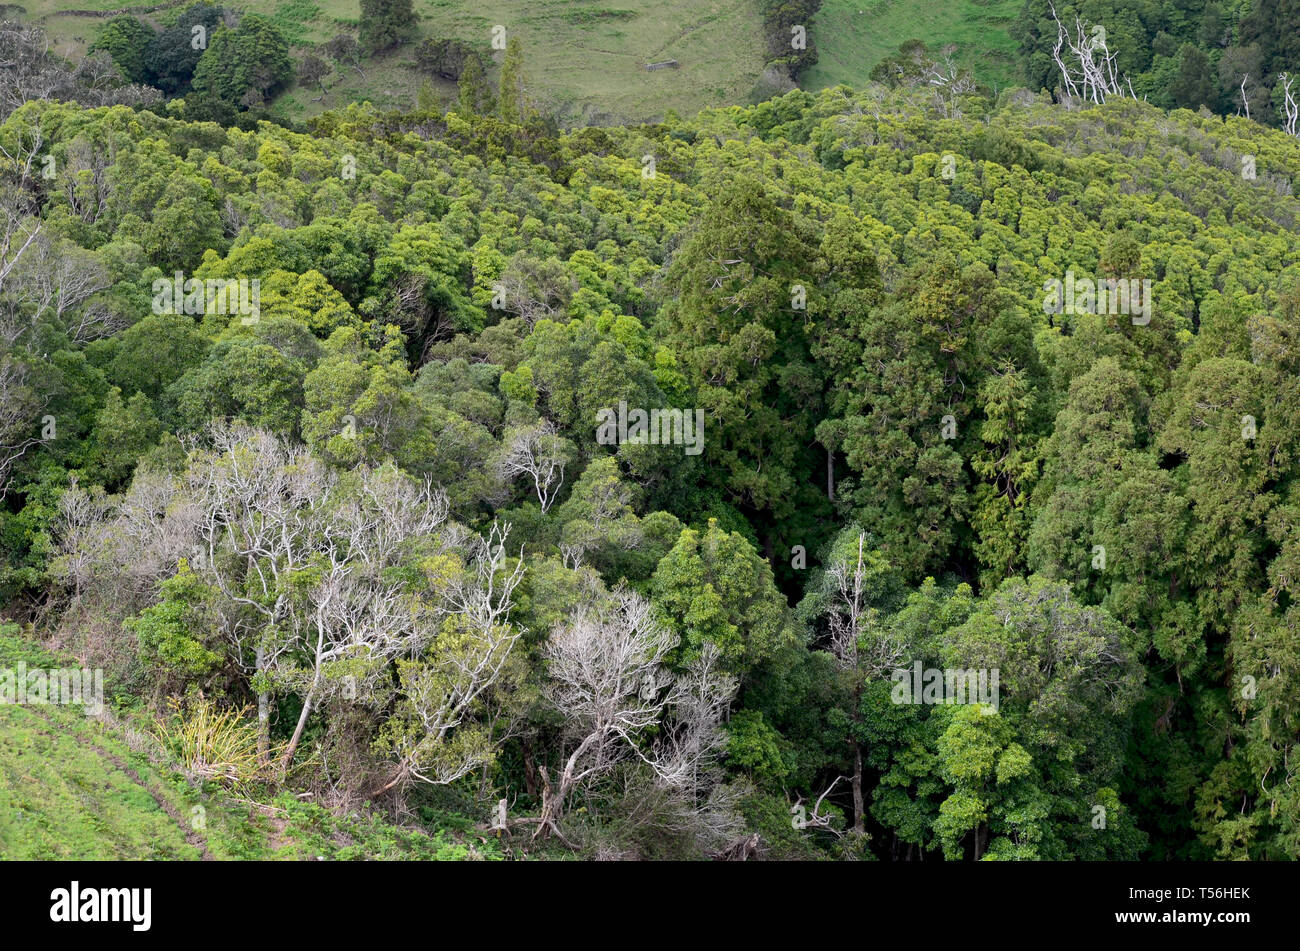 Mixed laurisilva forest and conifer plantations in Santa Maria island, Azores archipelago - Stock Image